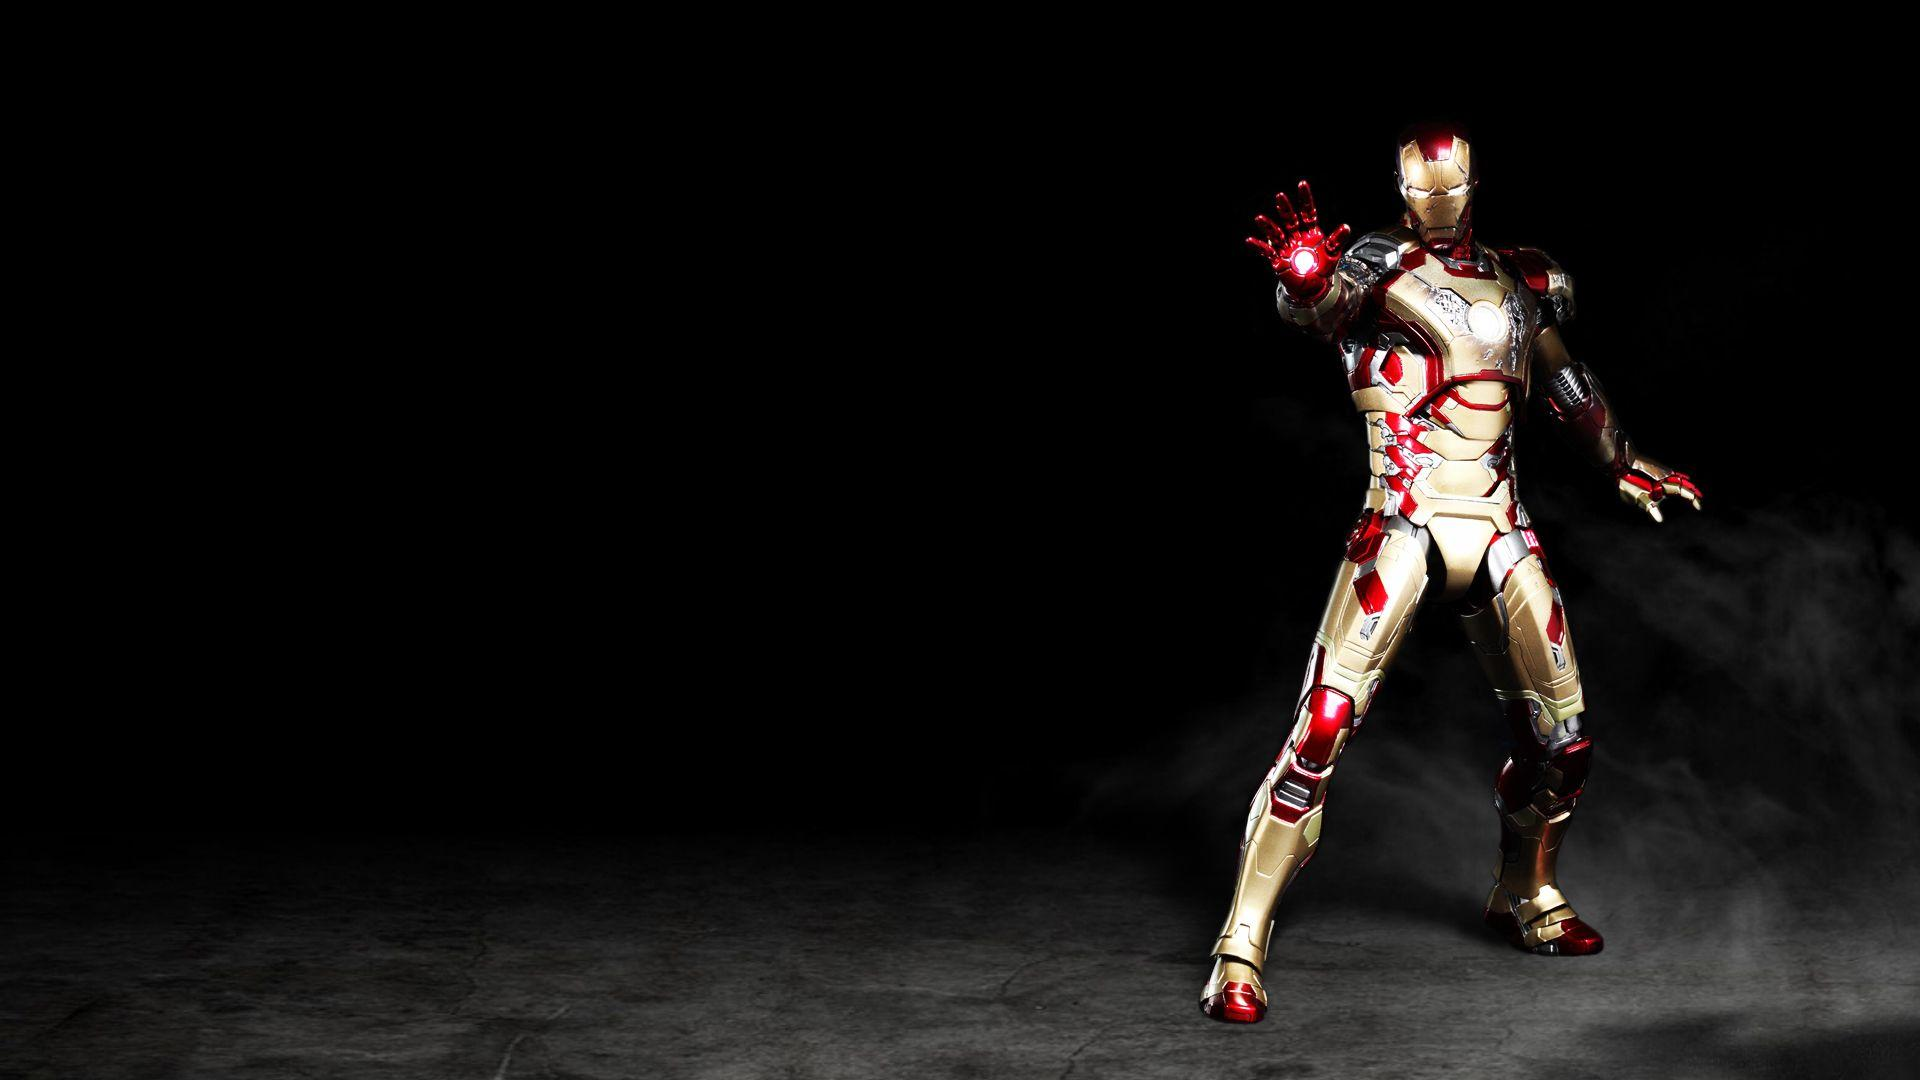 Iron Man Heart Wallpapers Wallpaper Cave